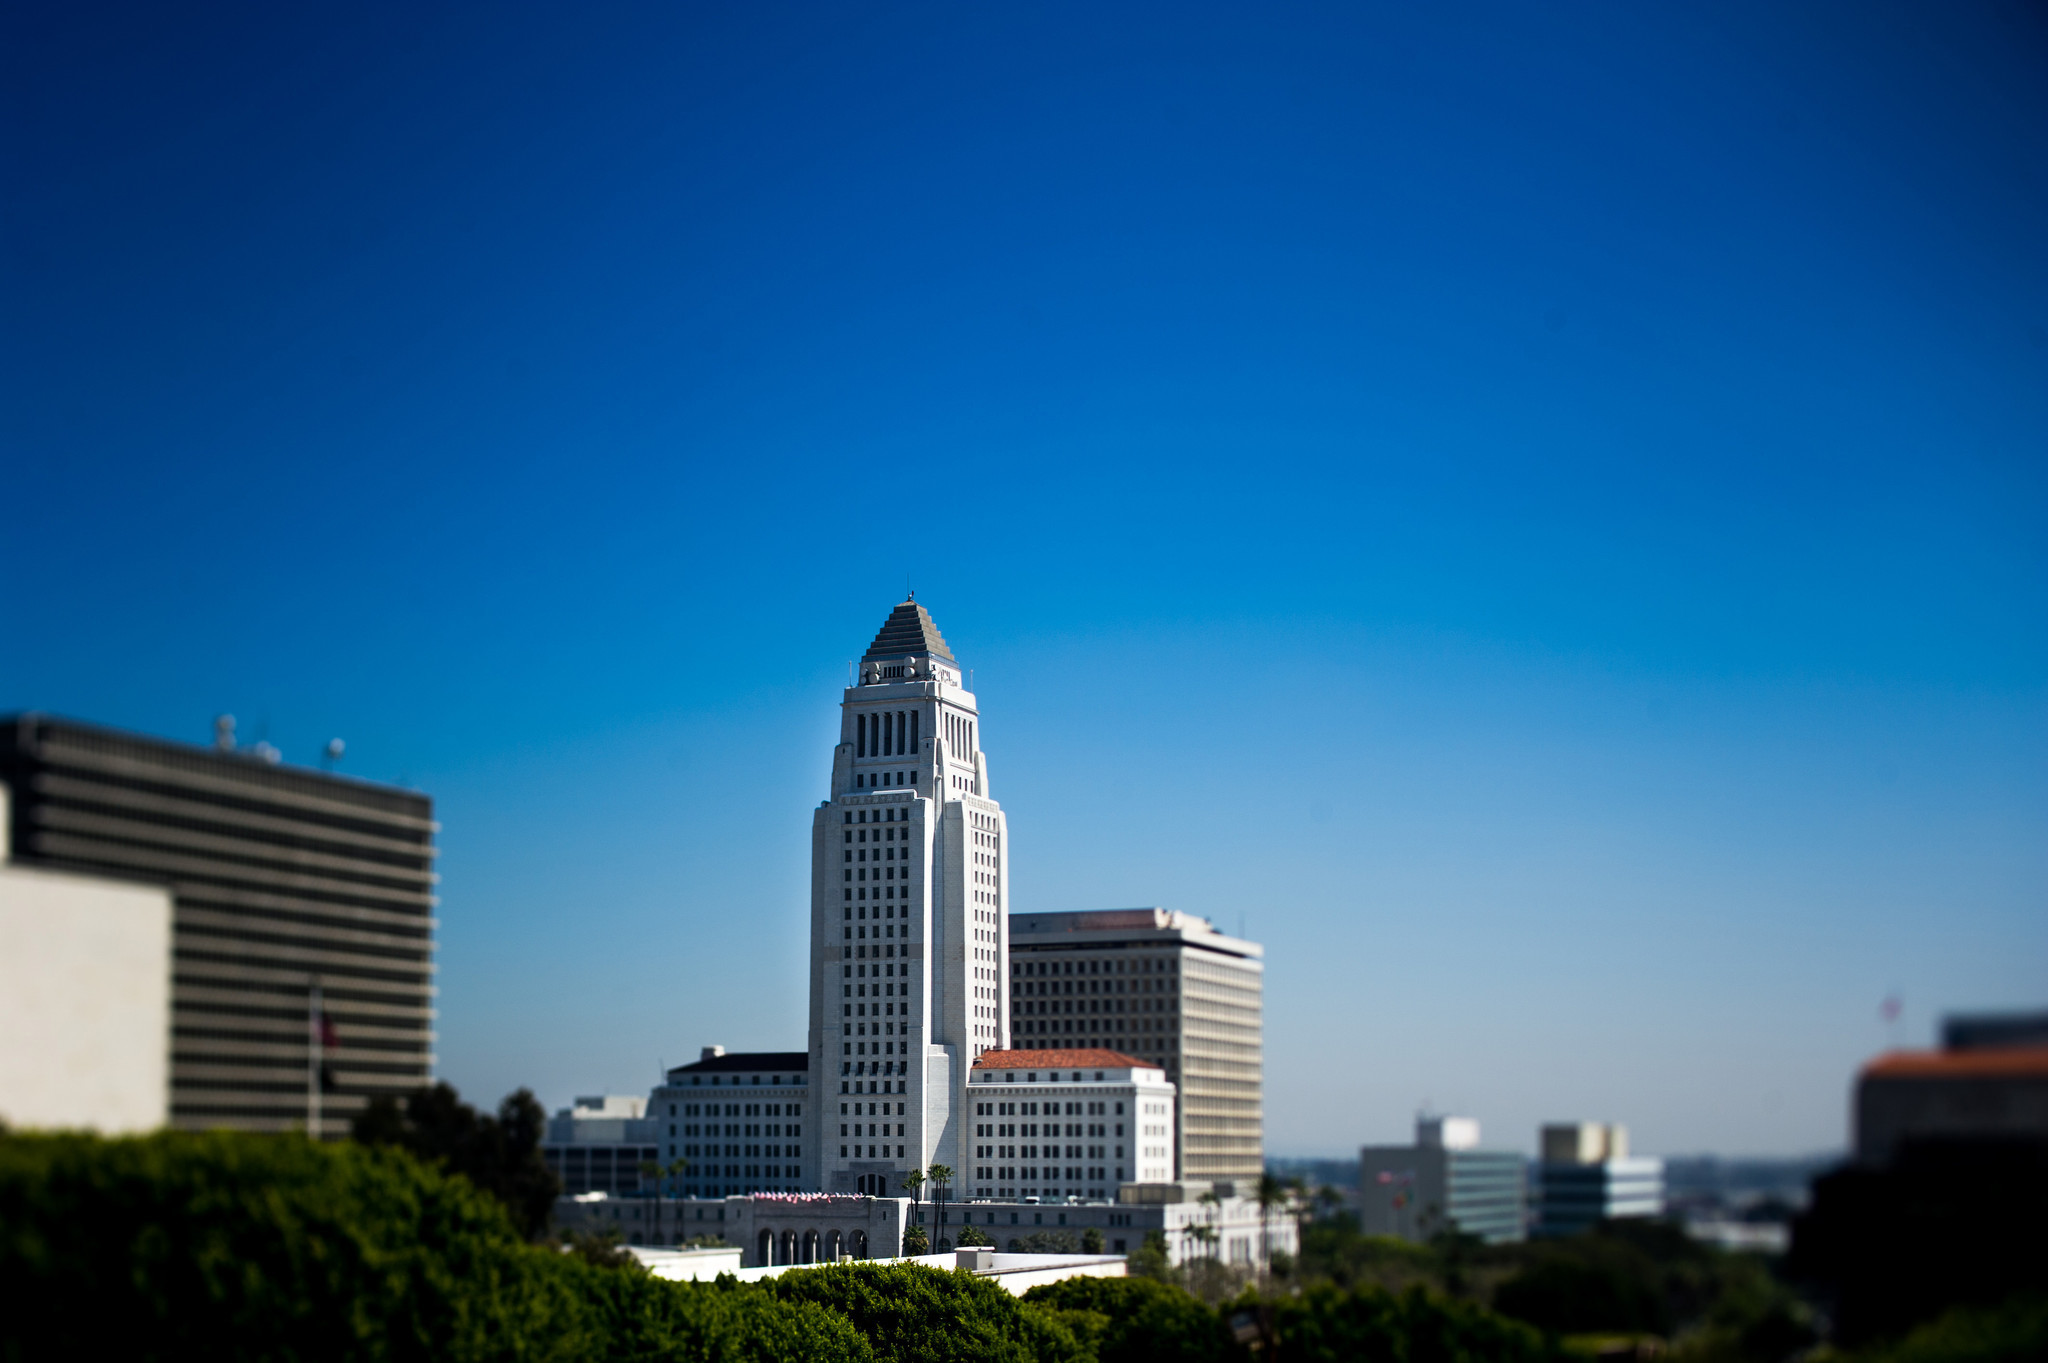 The iconic Los Angeles City Hall, completed 1928, in downtown LA. The Los Angeles of the '30s and '40s, as depicted in its Noir novels and movies, lives on in a tour de noir.